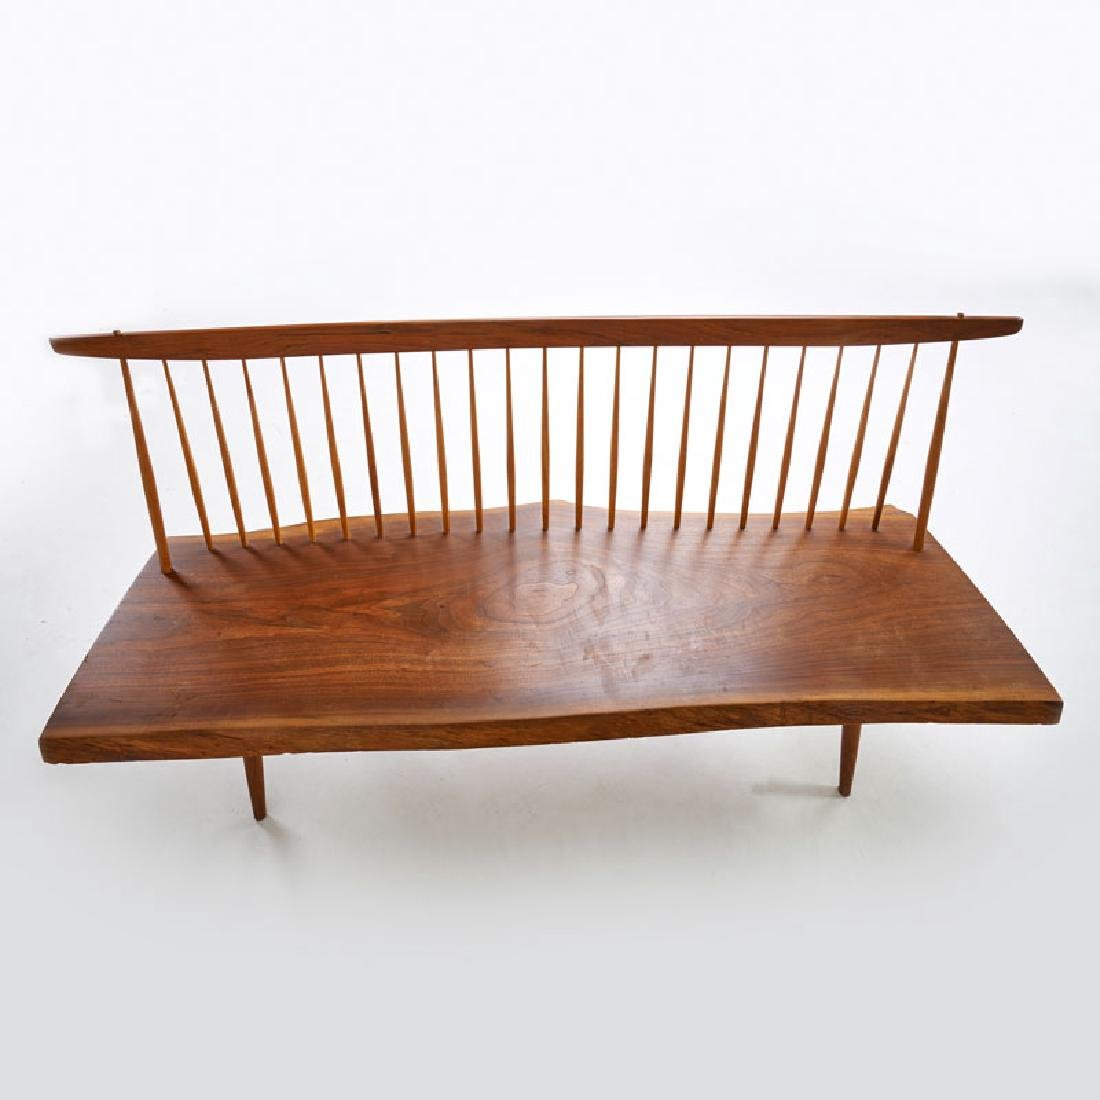 GEORGE NAKASHIMA Bench with back - 4